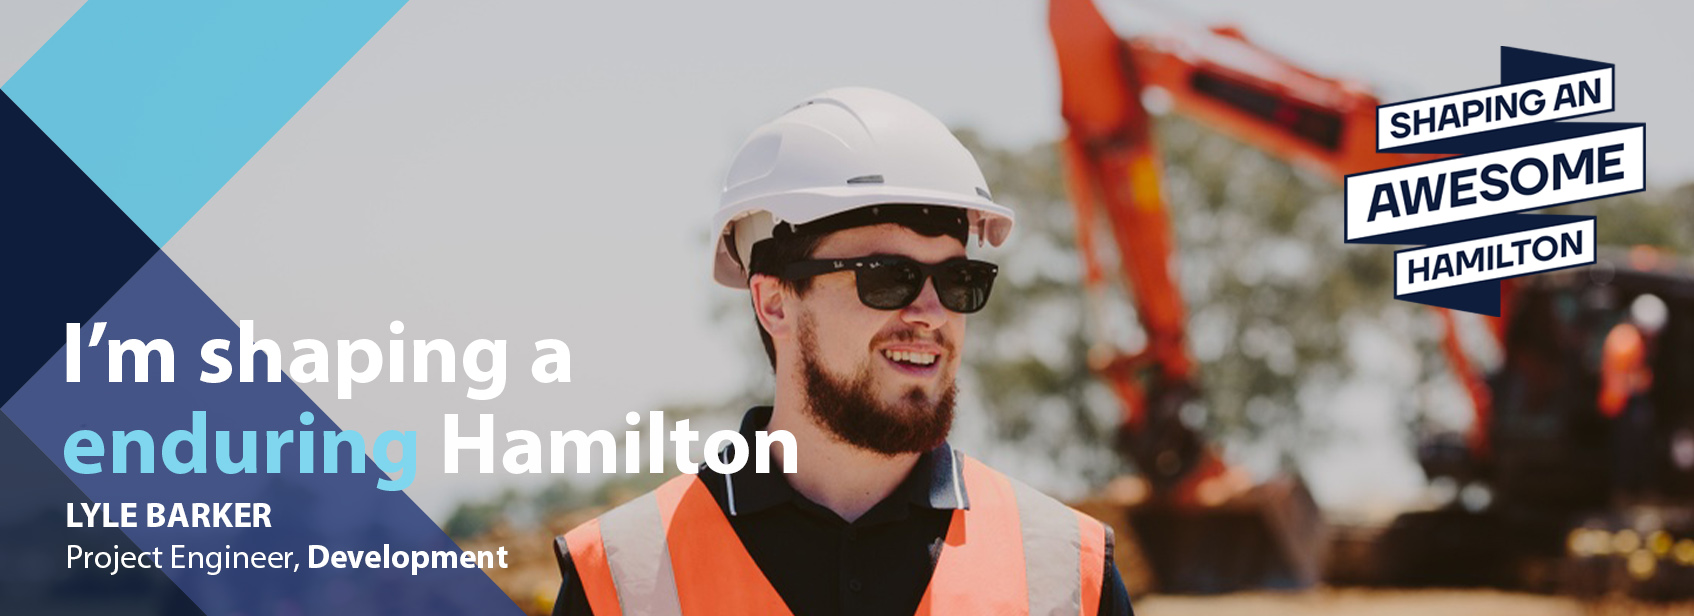 I'm shaping a enduring Hamilton - Lyle Barker, Project Engineer, Development